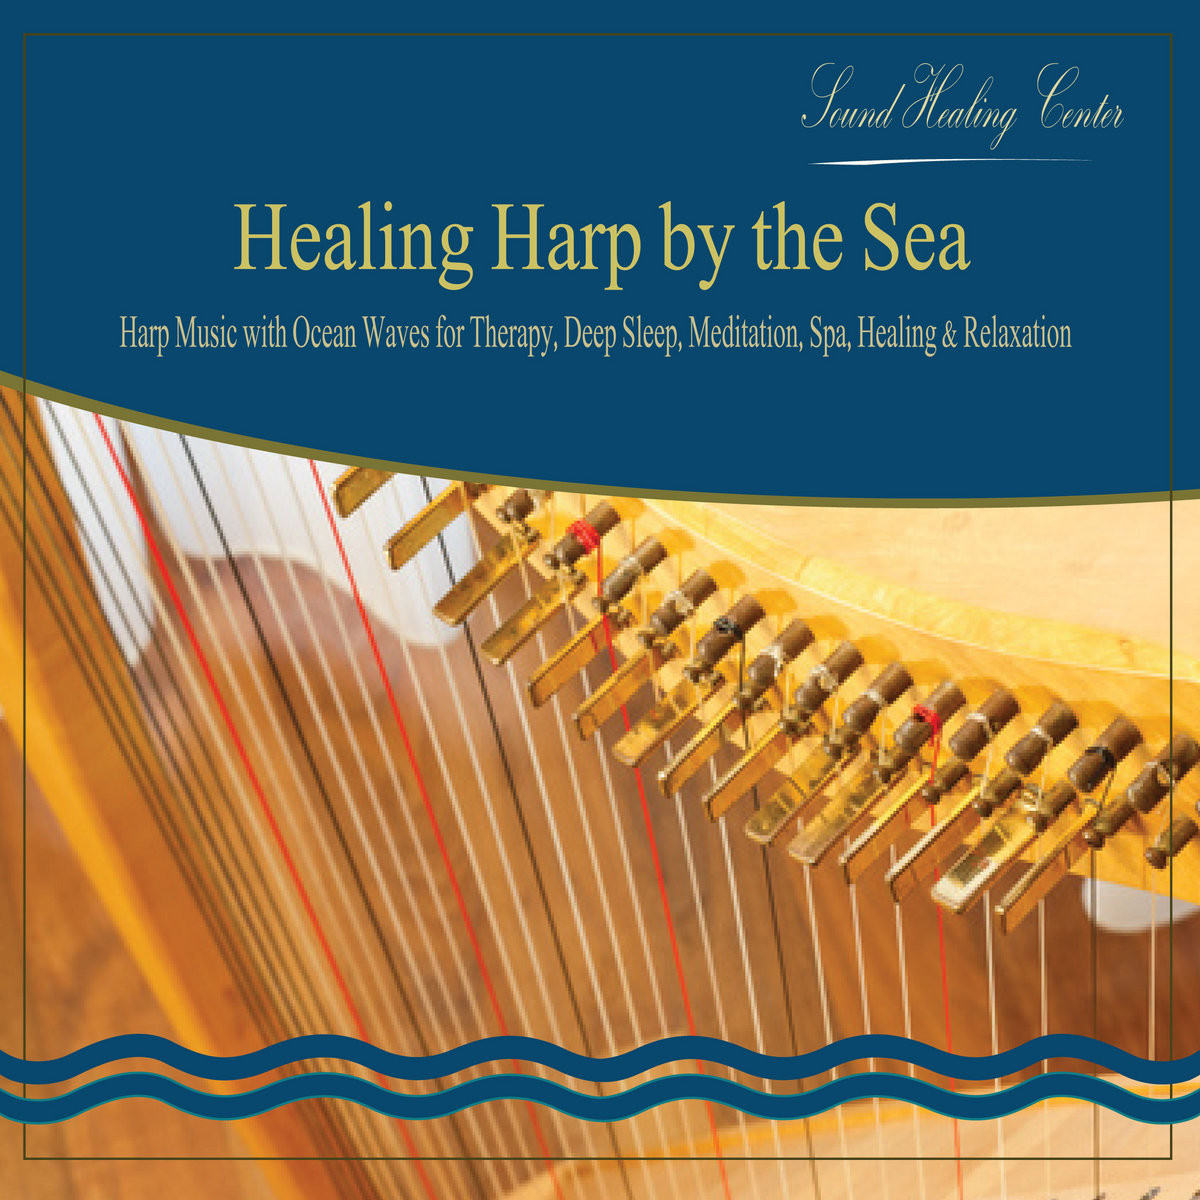 Healing Harp by the Sea: Harp Music with Ocean Waves for